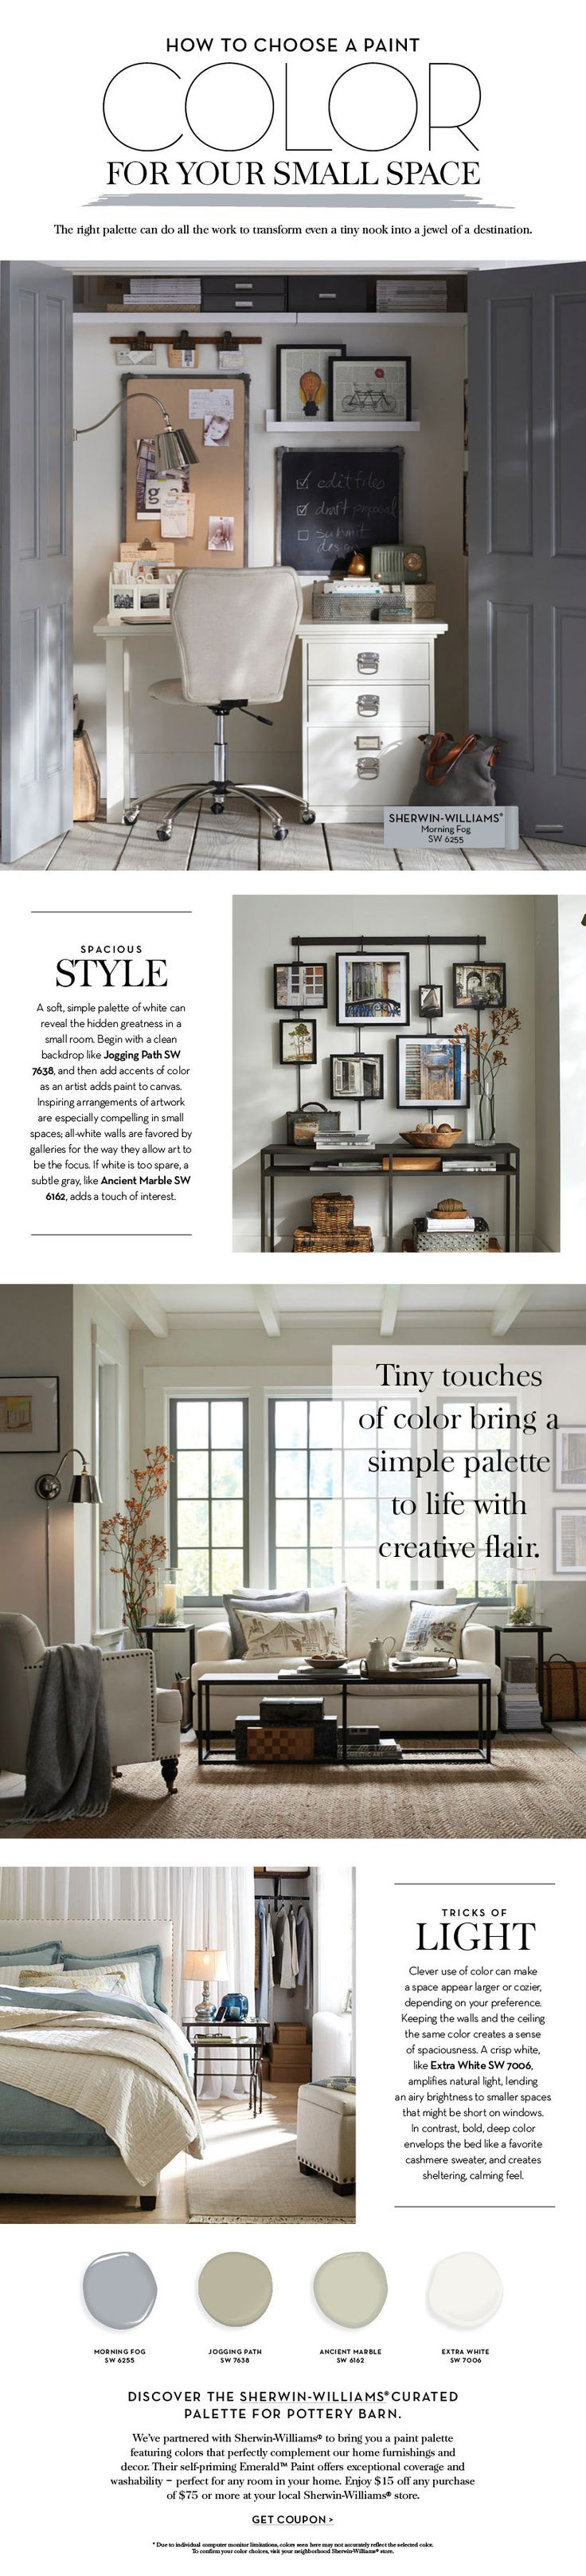 Pottery Barn Living Room Paint Colors 17 Best Images About Paint On Pinterest Paint Colors Wool And